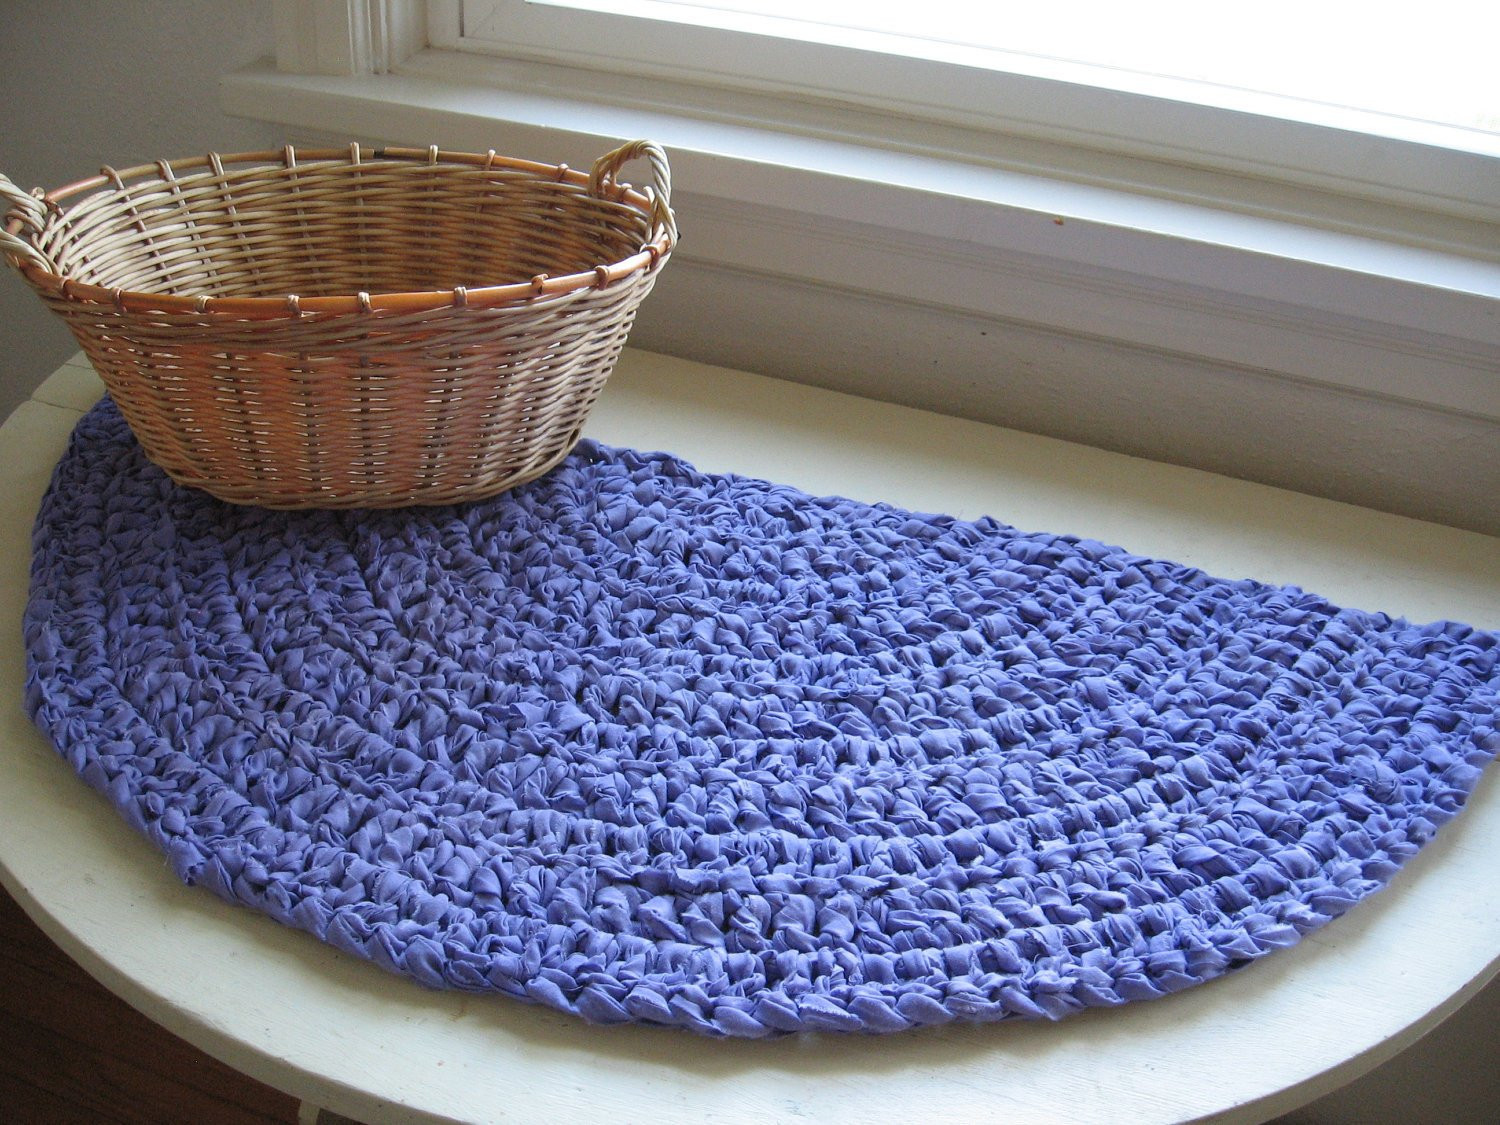 Unique Half Moon Crocheted Rag Rug or Table Mat Upcycled Lavender Crochet Rug with Fabric Strips Of Lovely Goat Feathers Crochet Rug and Purse Crochet Rug with Fabric Strips